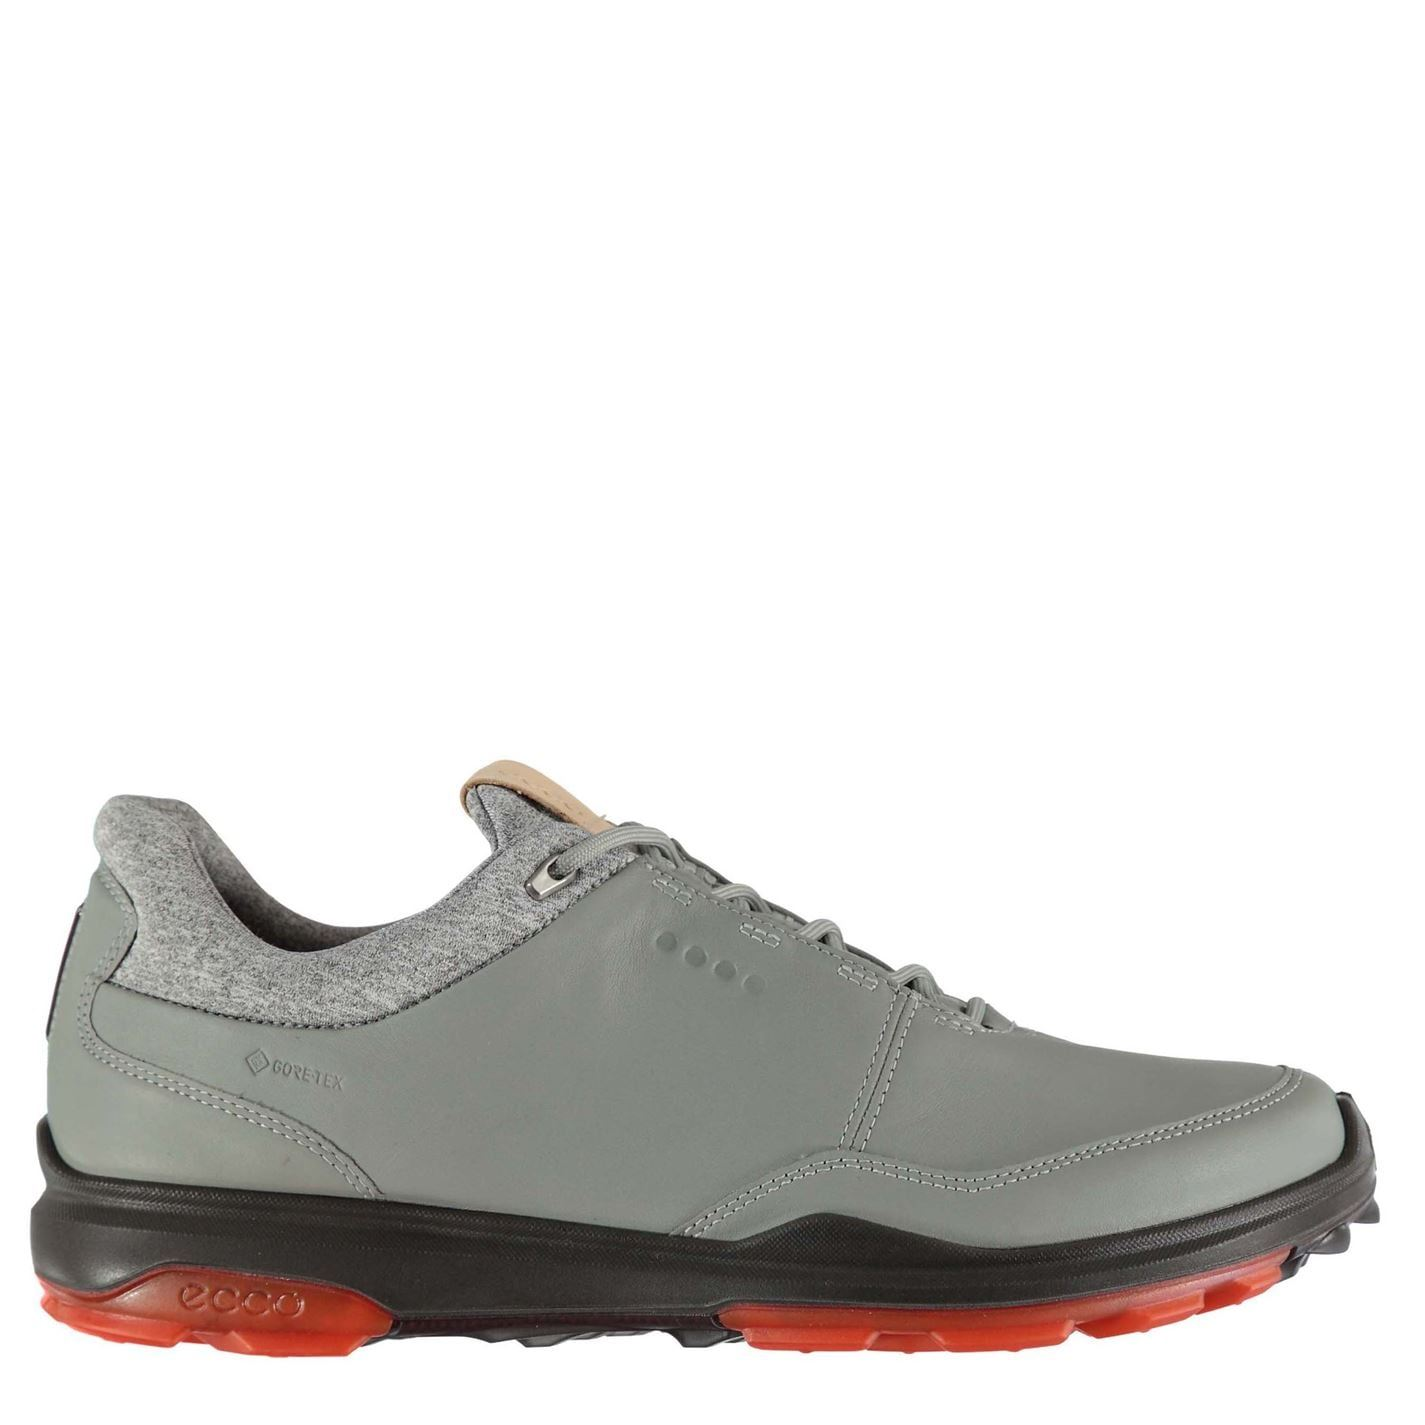 ecco biom lace golf shoes - 51% OFF